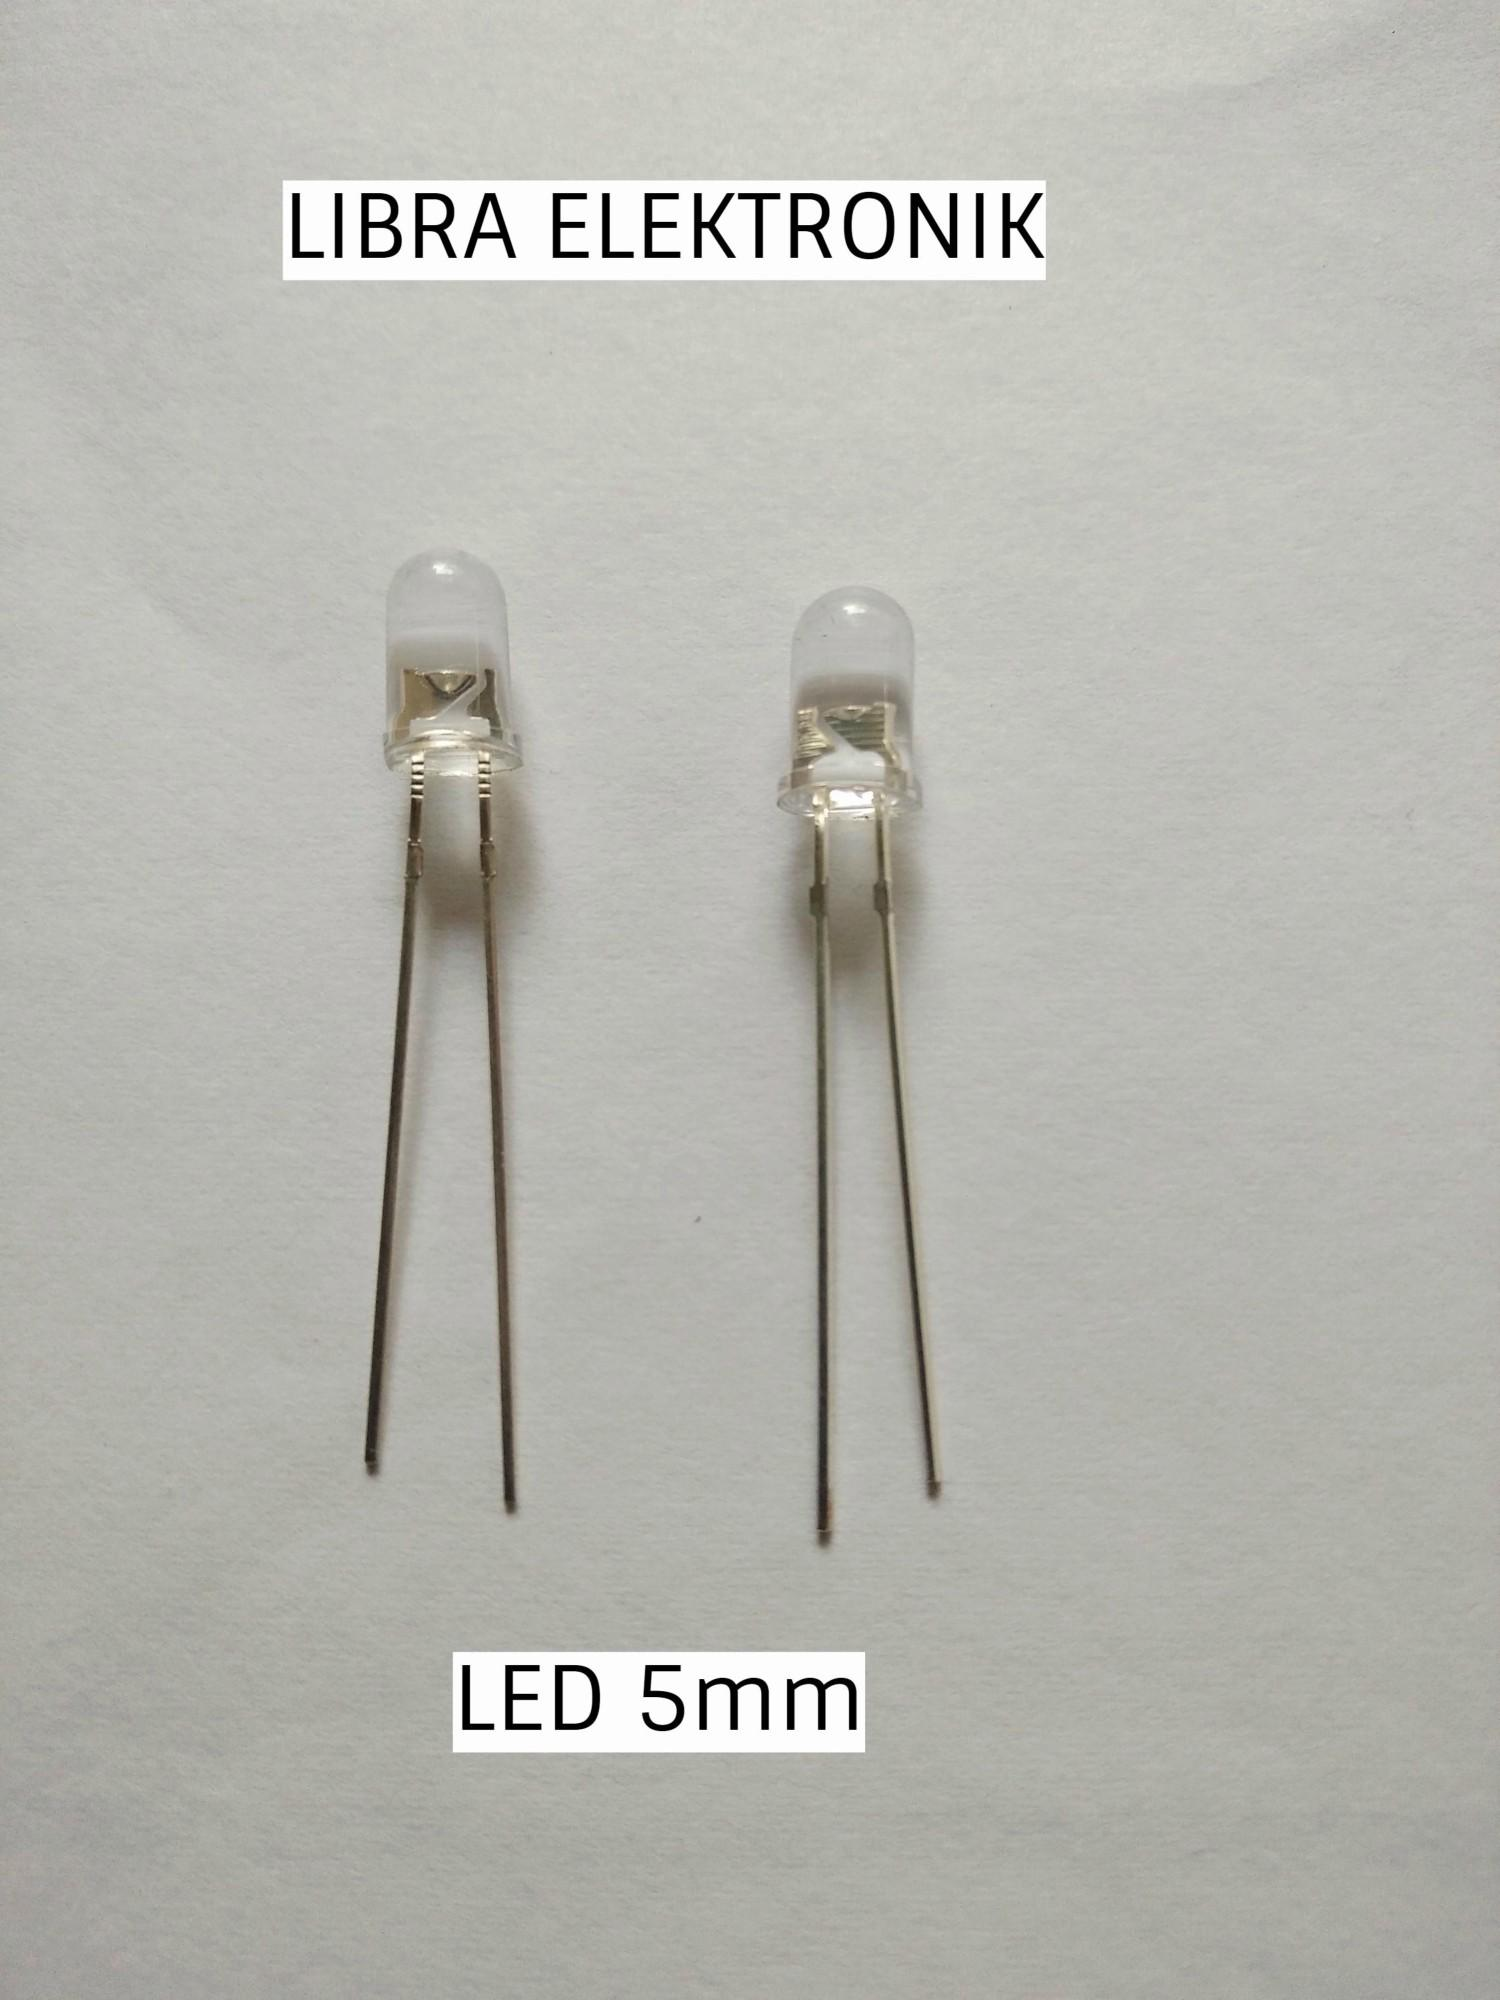 Lampu Led Bening 5mm Warna Biru harga per 10 pcs